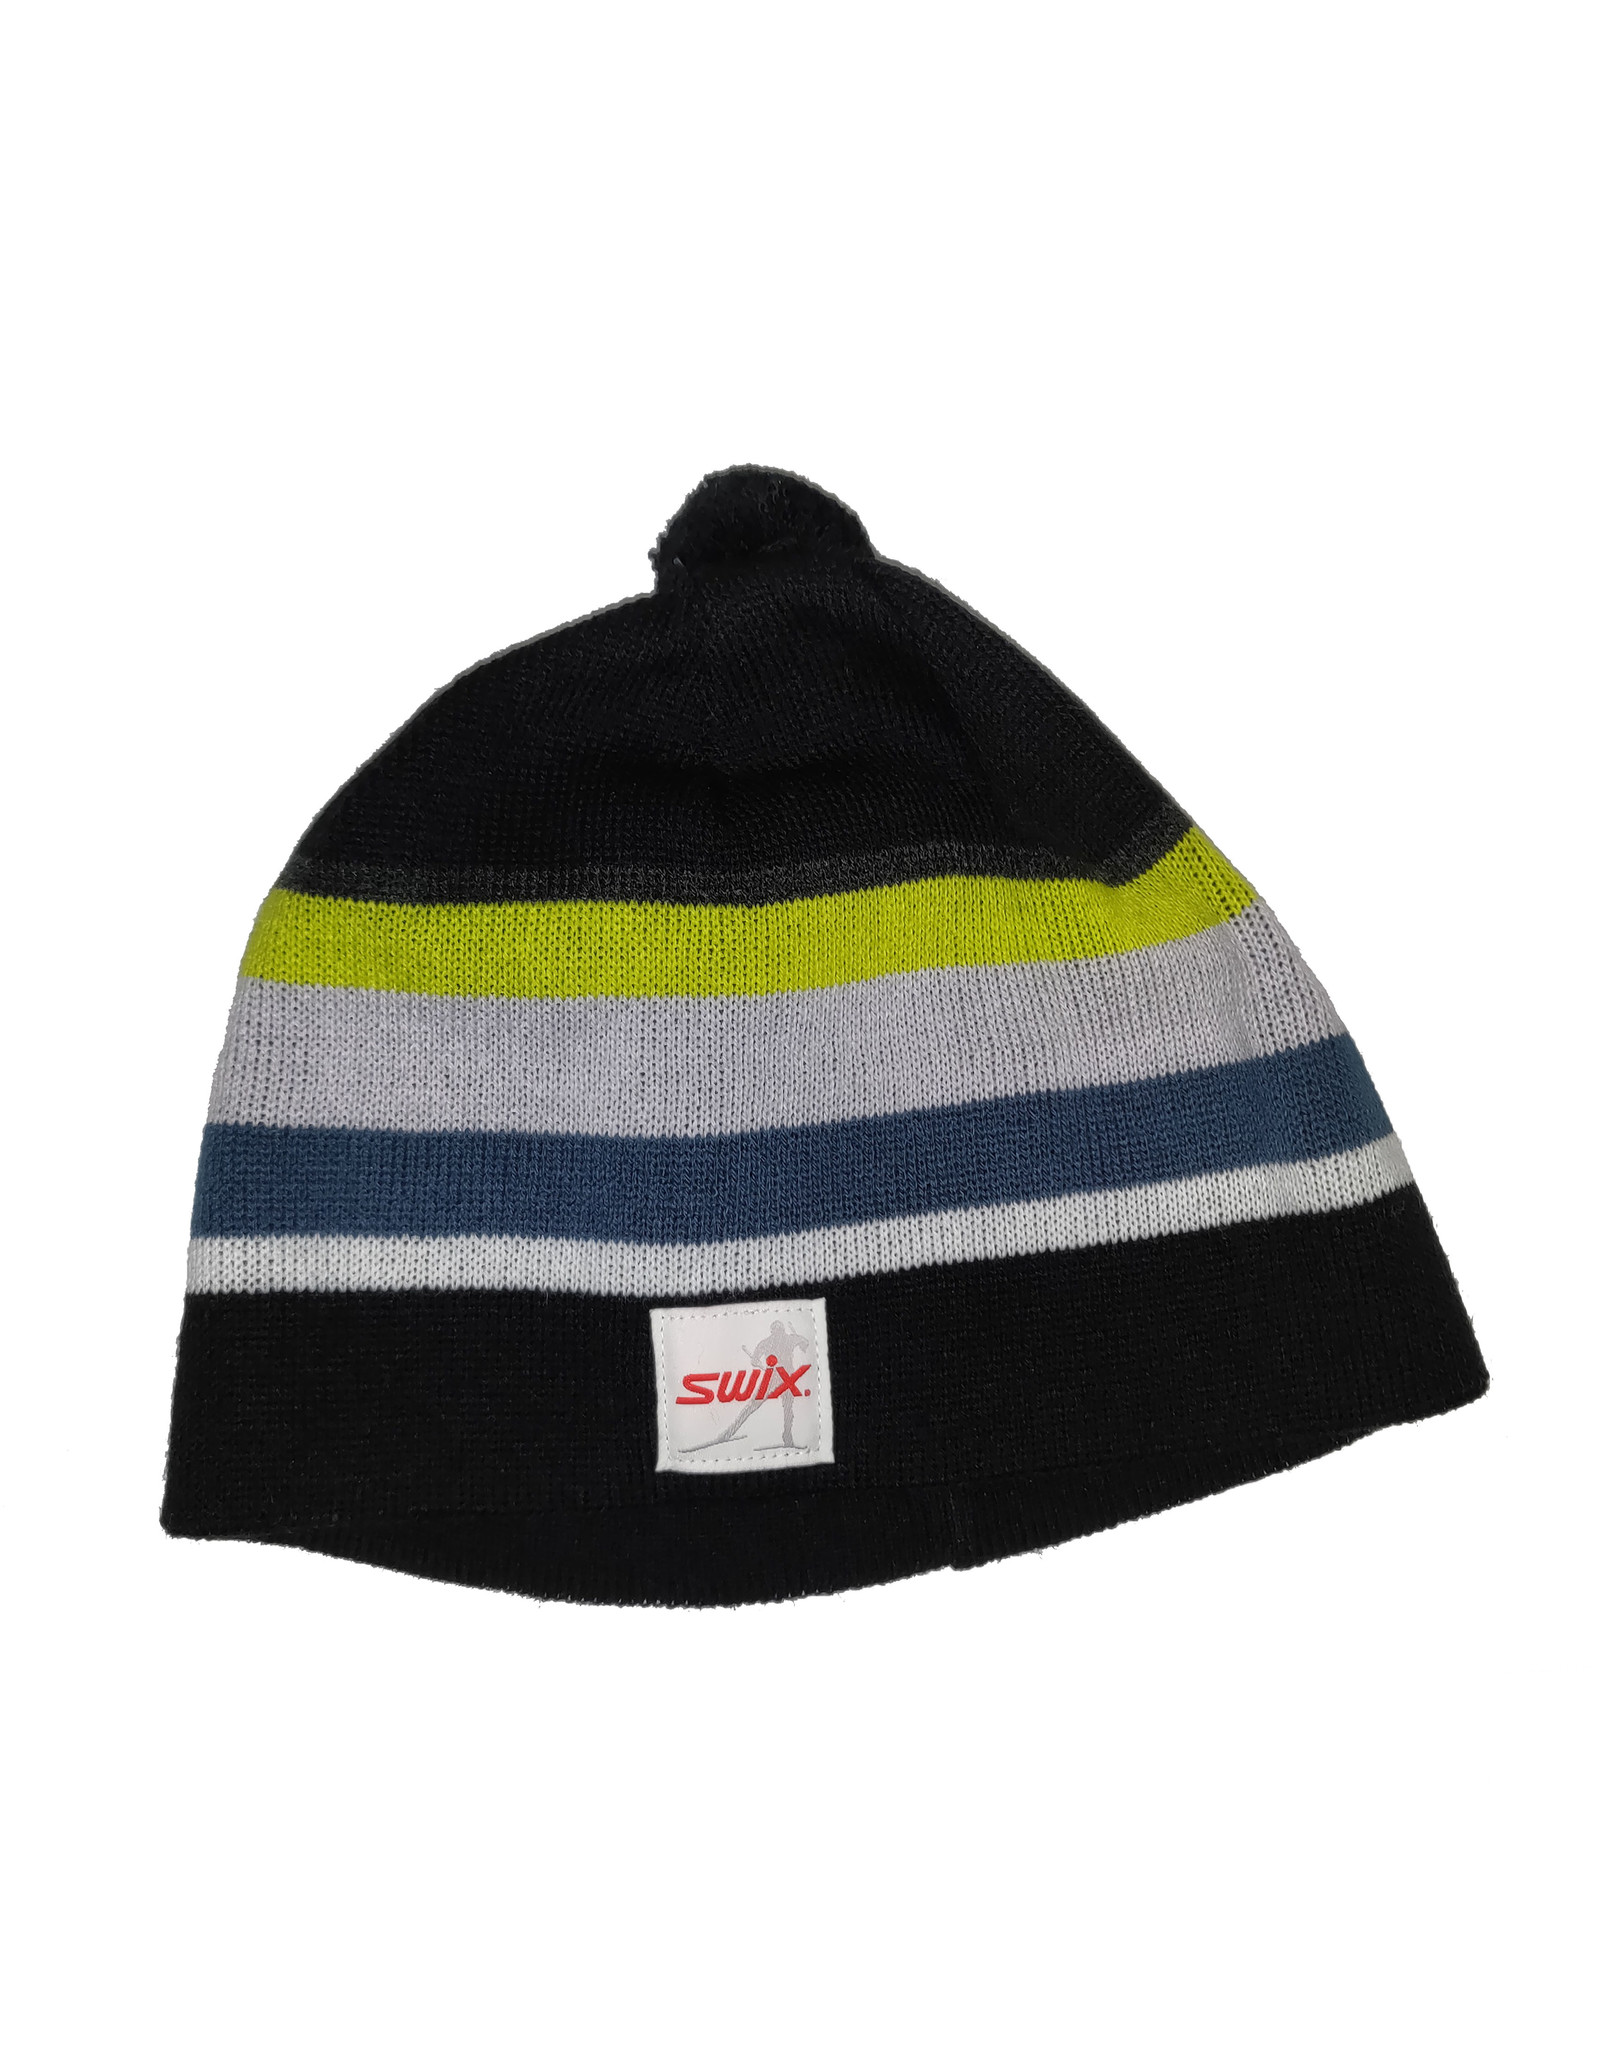 Swix Dirk Hat Black